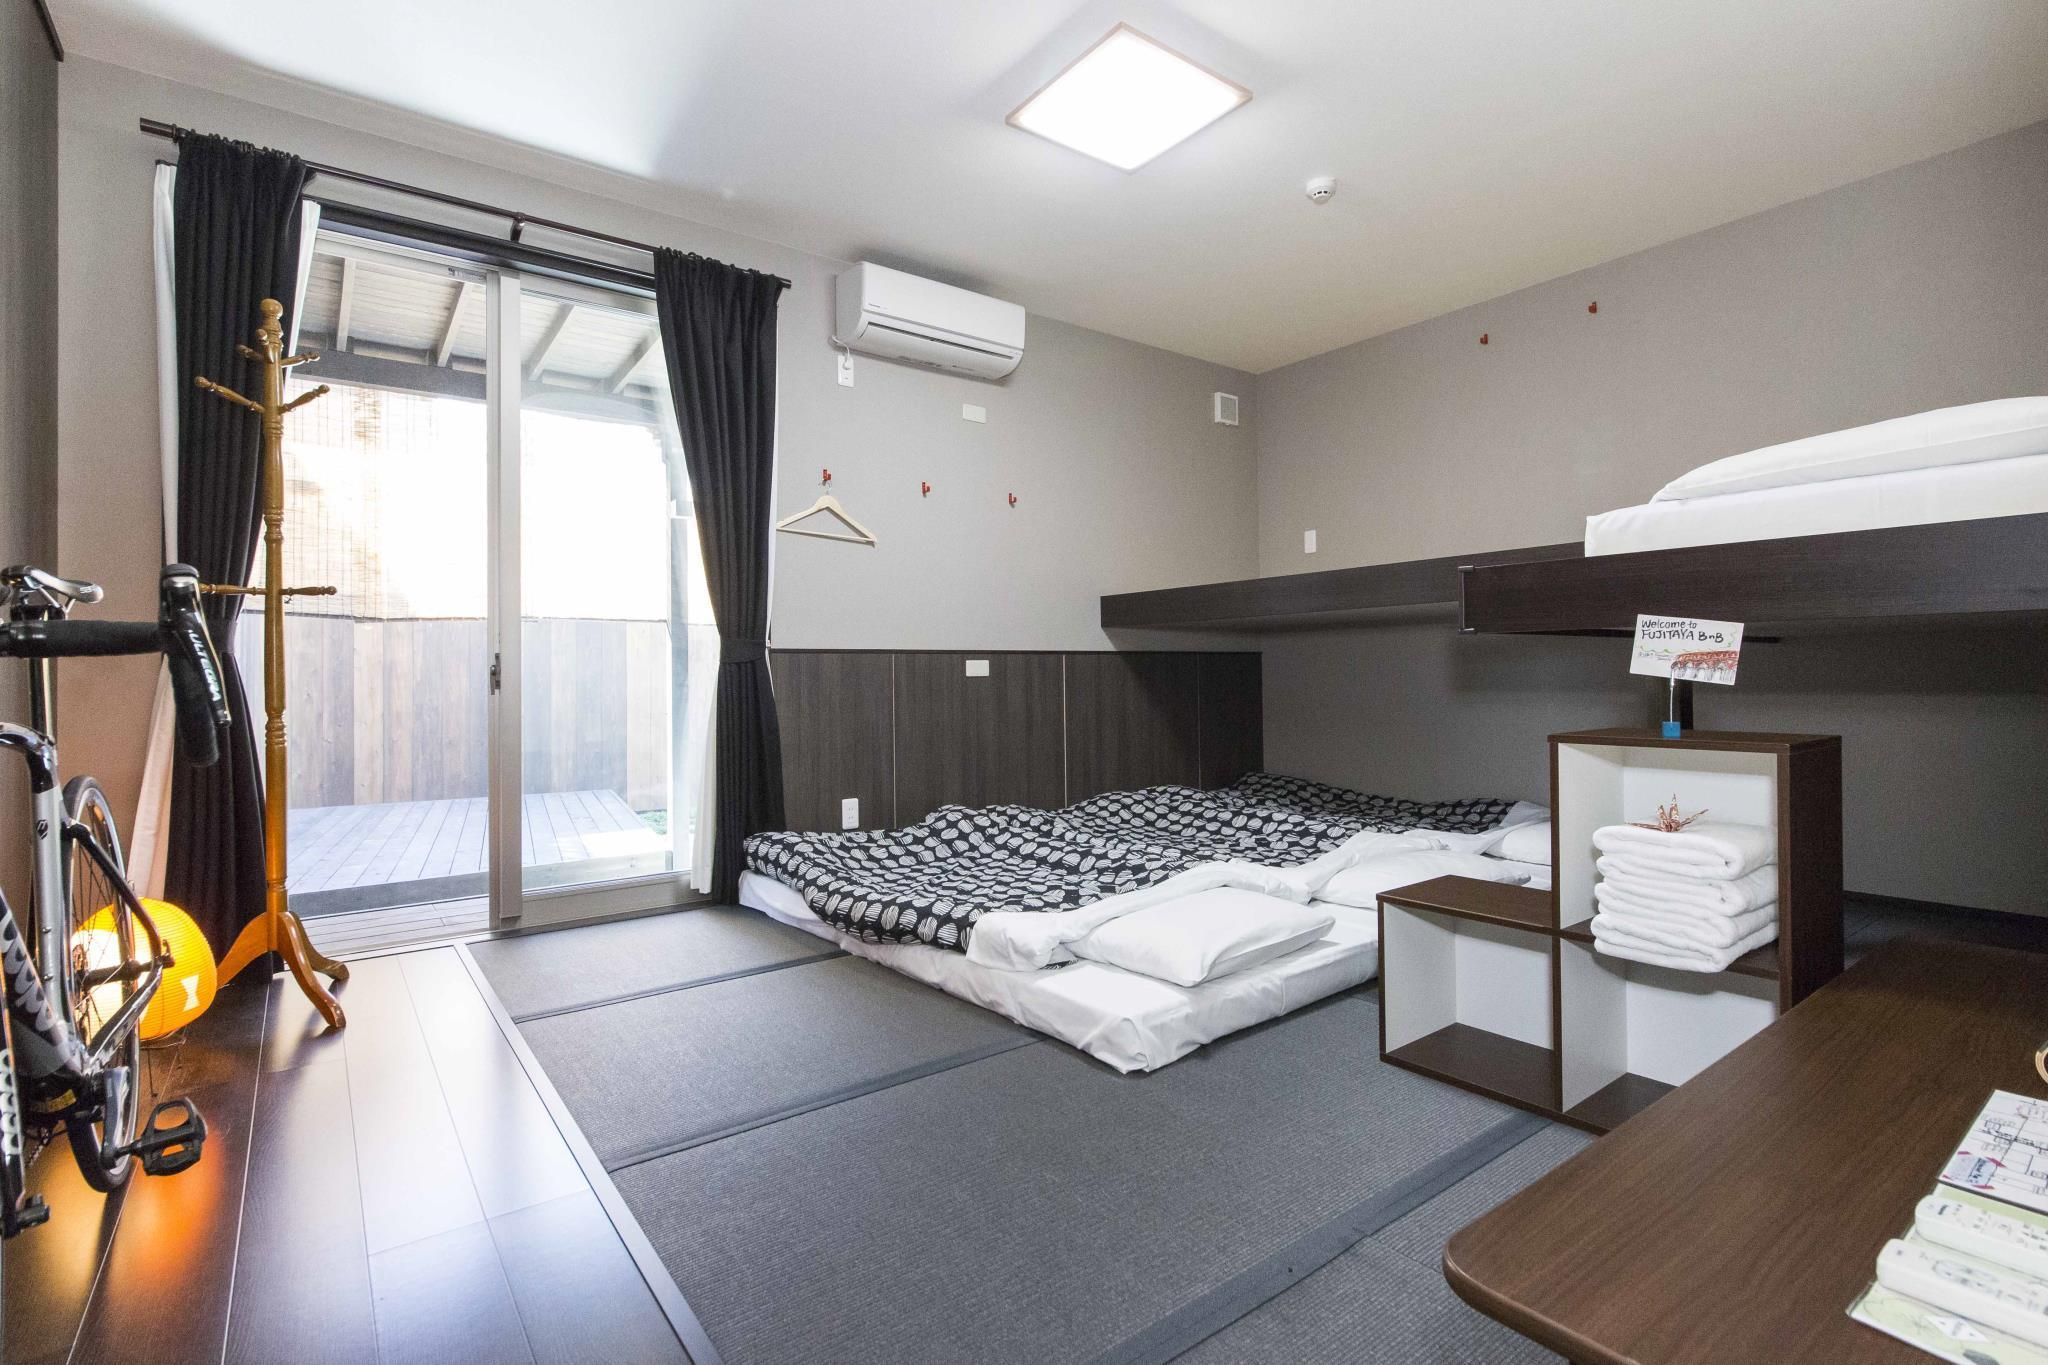 Deluxe Japanese Style Room for 3 People